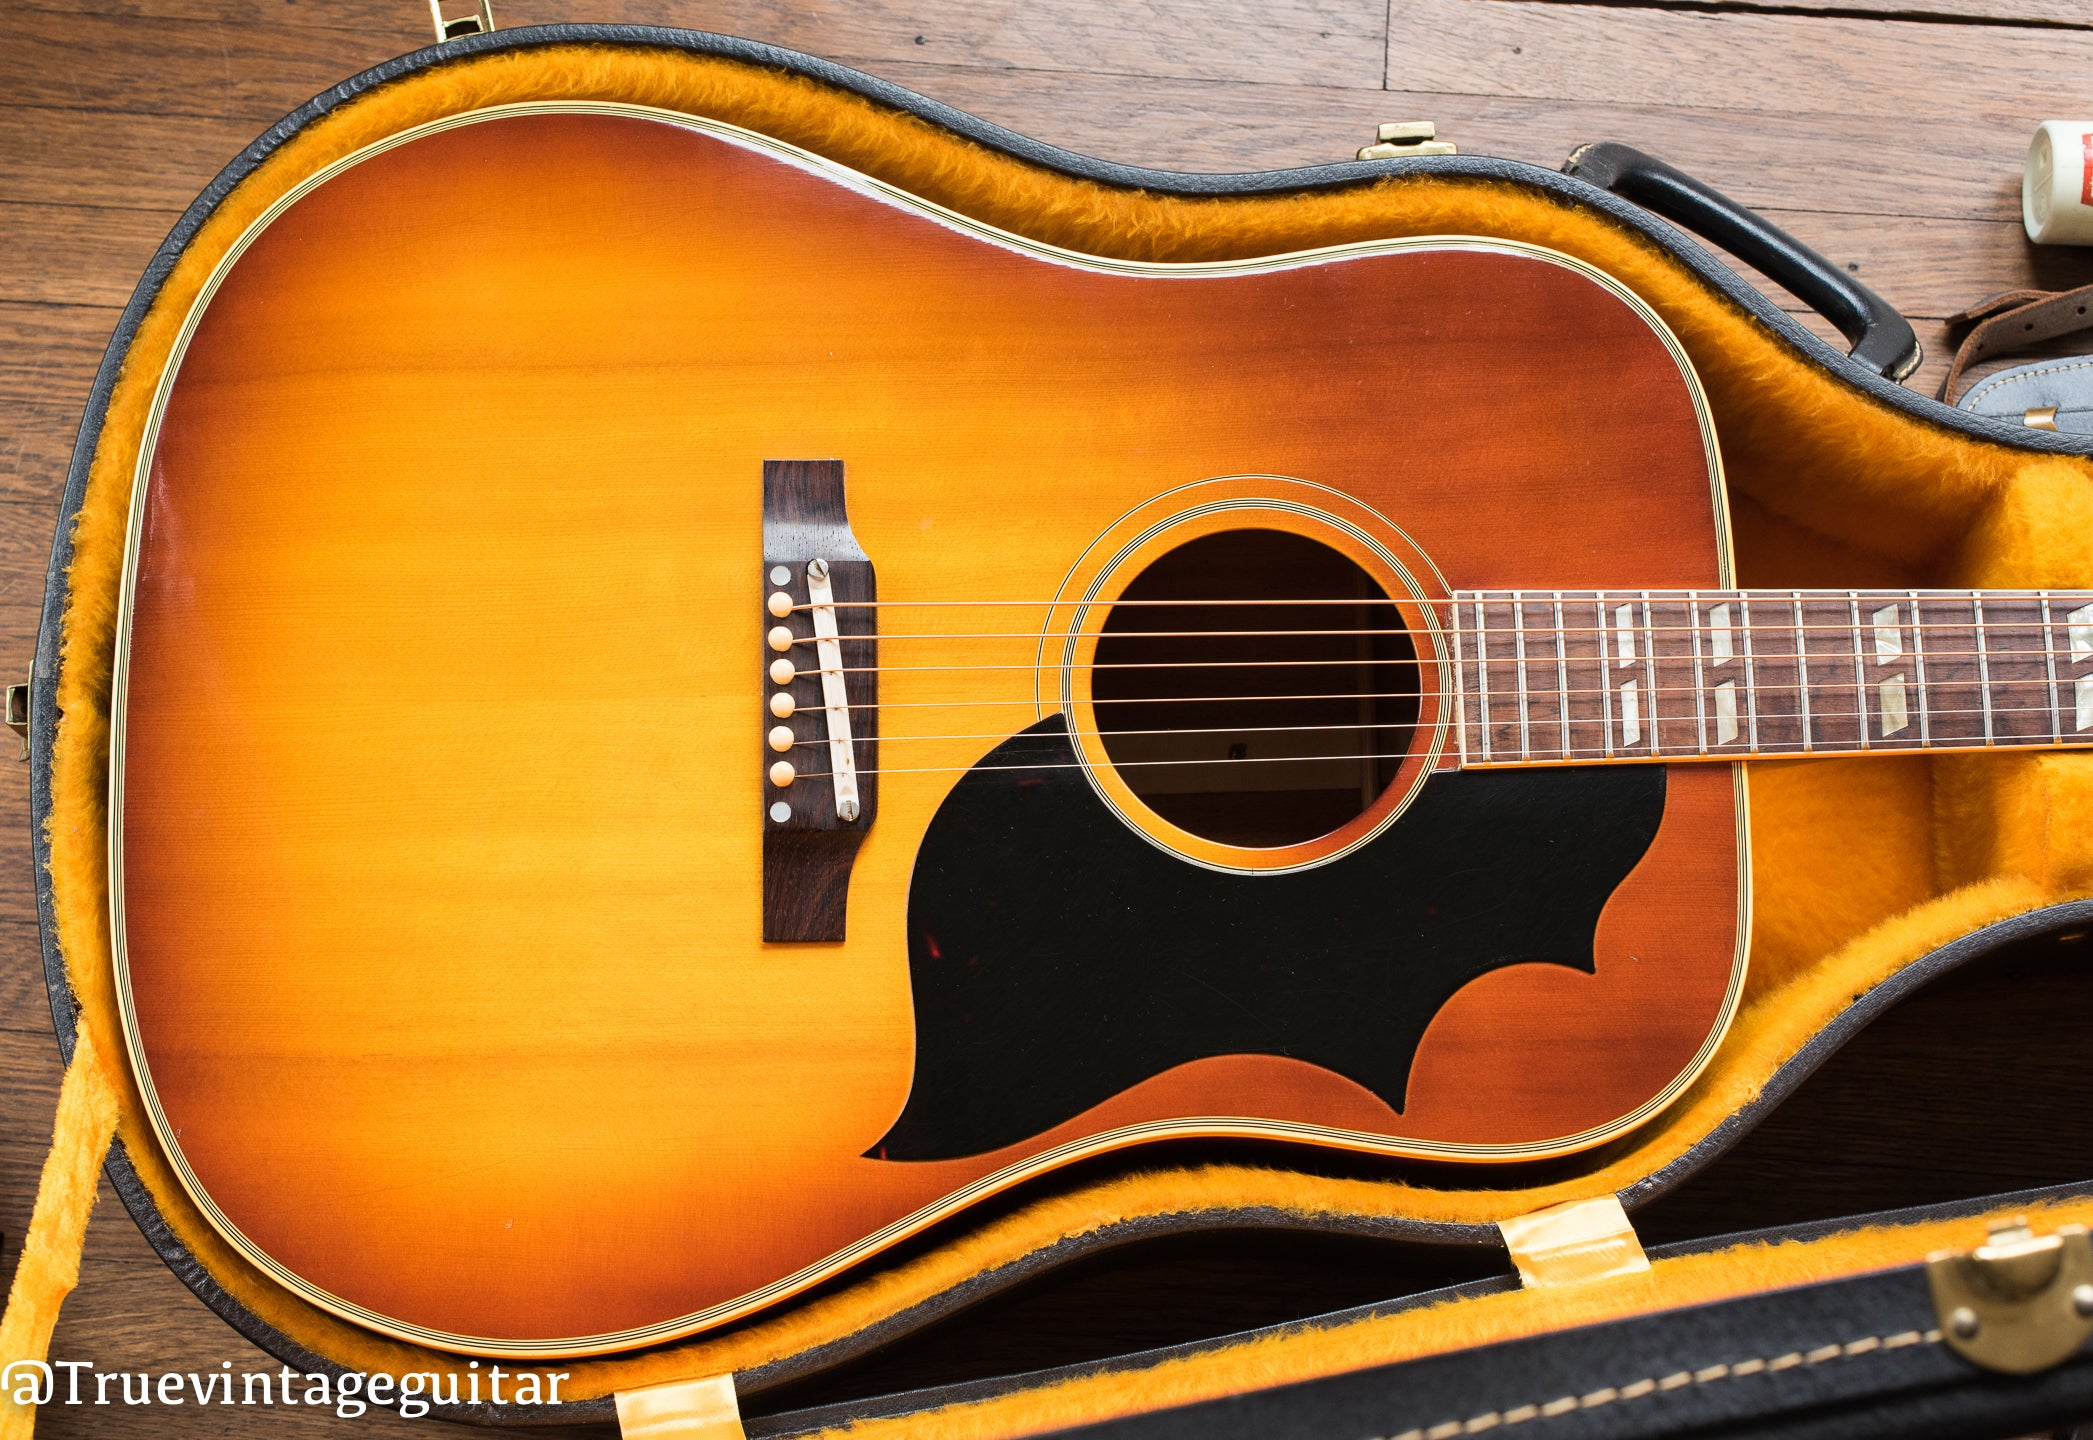 Vintage 1965 Gibson SJ Southern Jumbo acoustic guitar